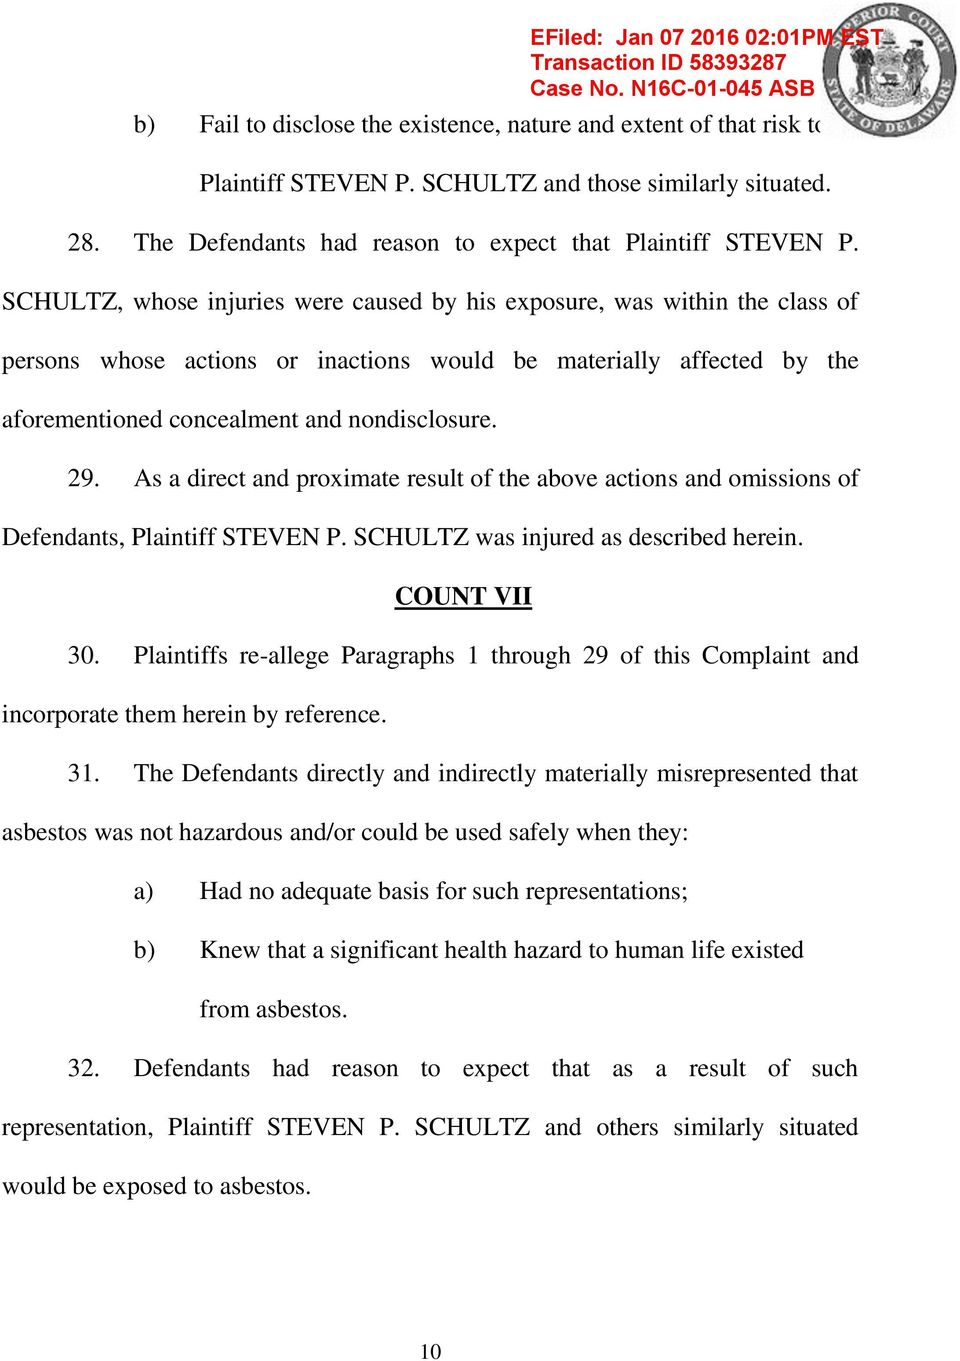 As a direct and proximate result of the above actions and omissions of Defendants, Plaintiff STEVEN P. SCHULTZ was injured as described herein. COUNT VII 30.